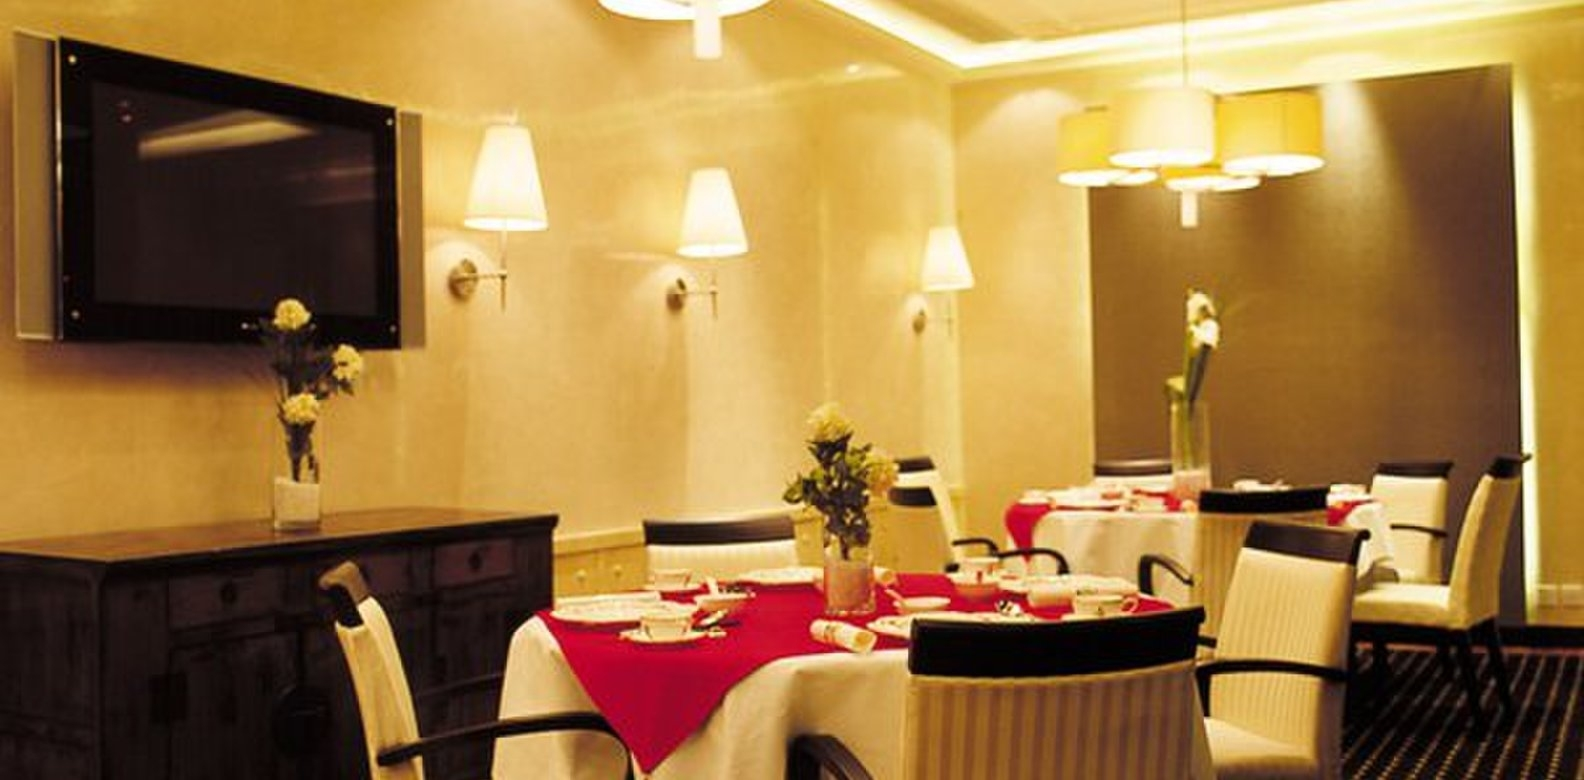 Peking Garden | Hong Kong Tatler regarding Peking Garden Restaurant Alexandra House Hong Kong